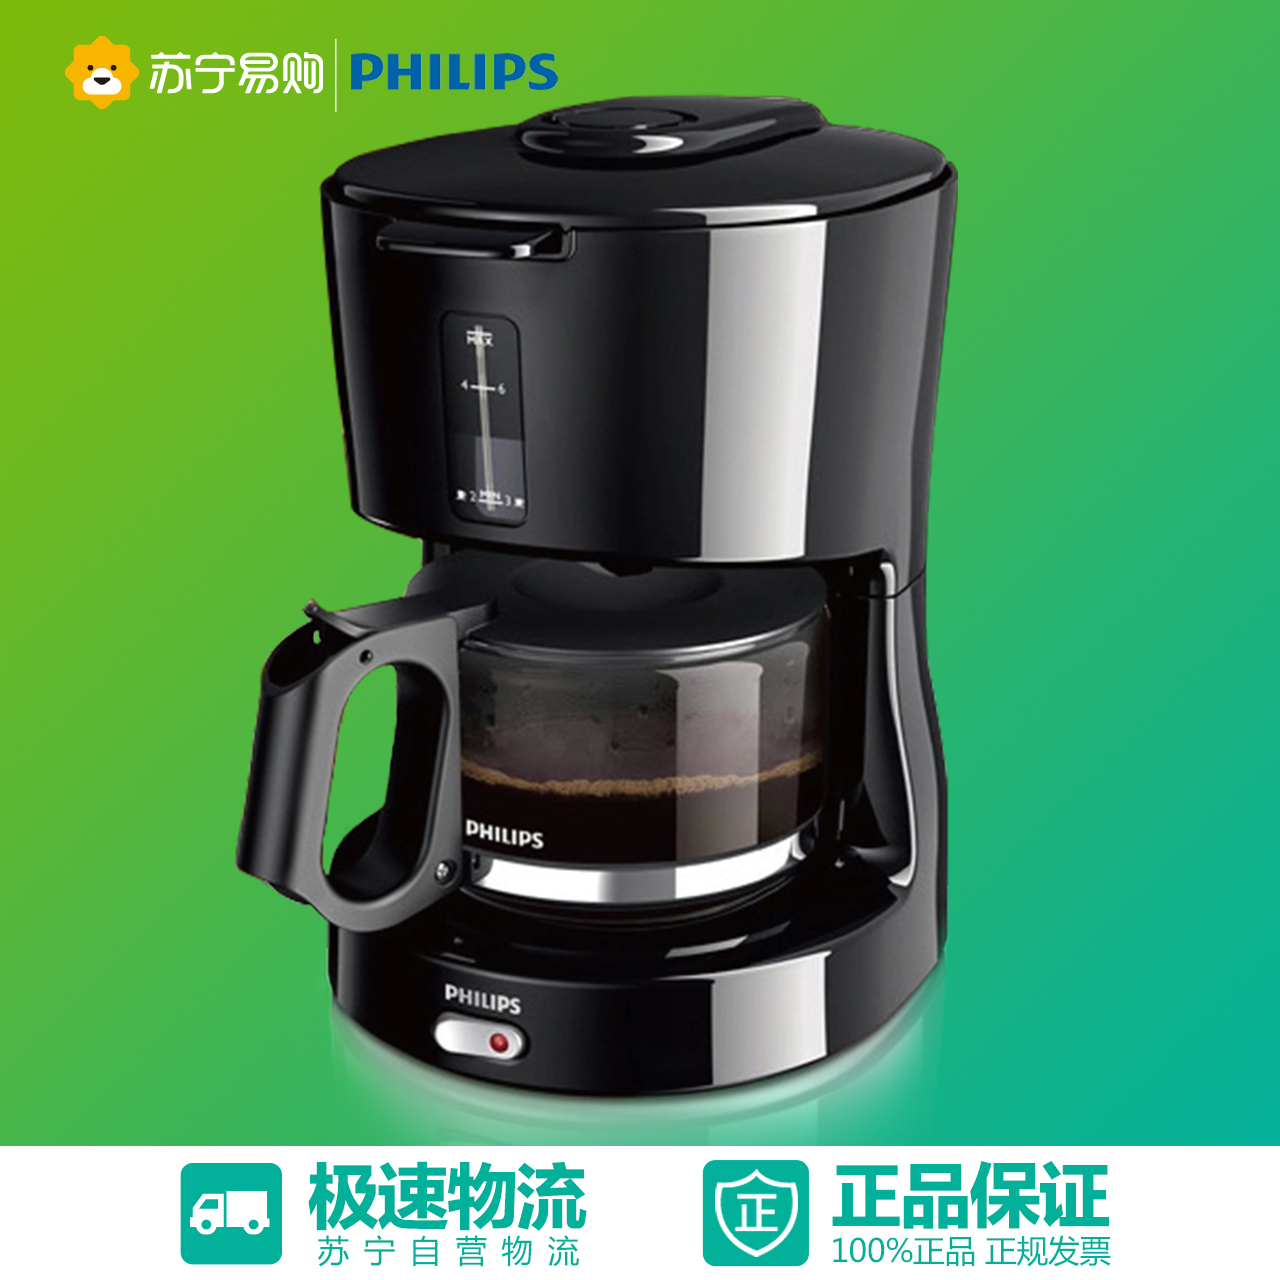 Buy Philips Philips Coffee Maker American Household Automatic Coffee Machine Can Be Hd7 450 Black Genuine In Cheap Price On Alibaba Com